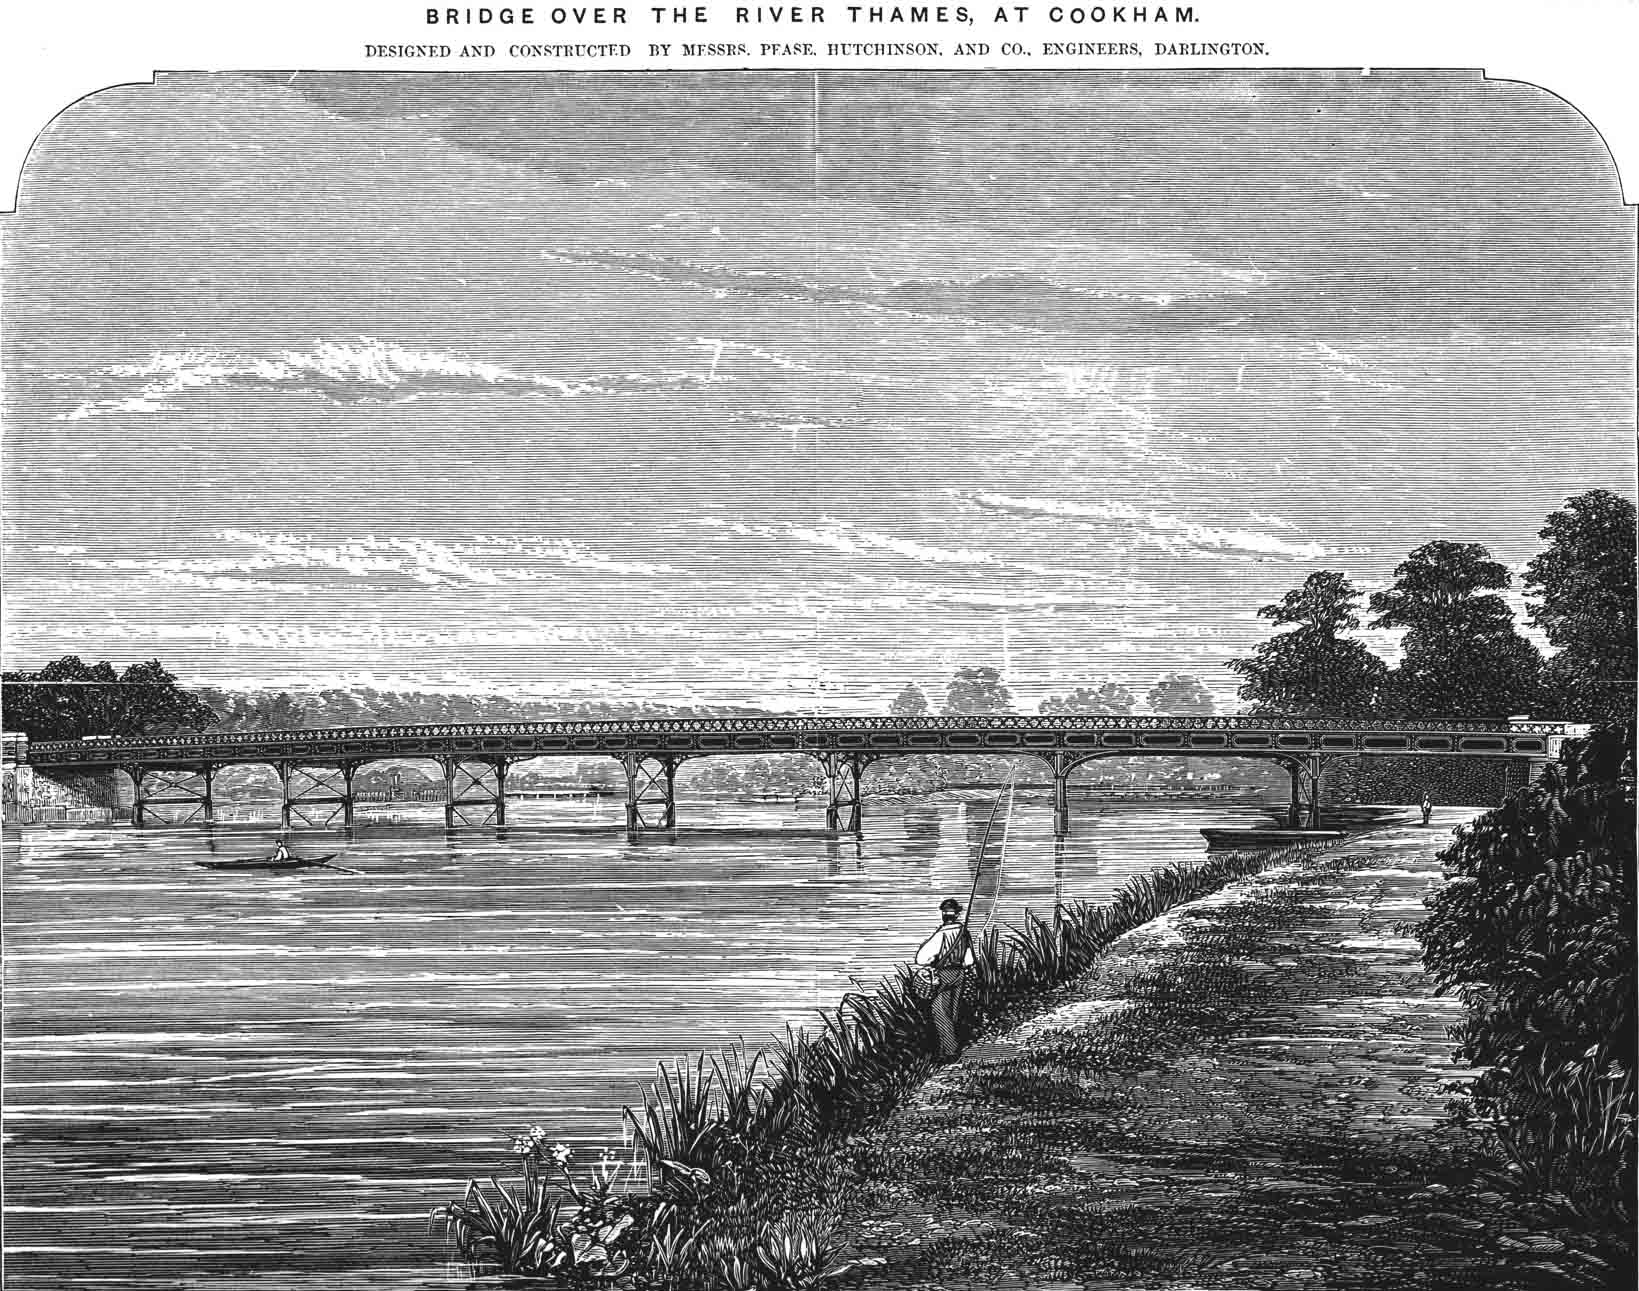 Cookham Bridge 1872